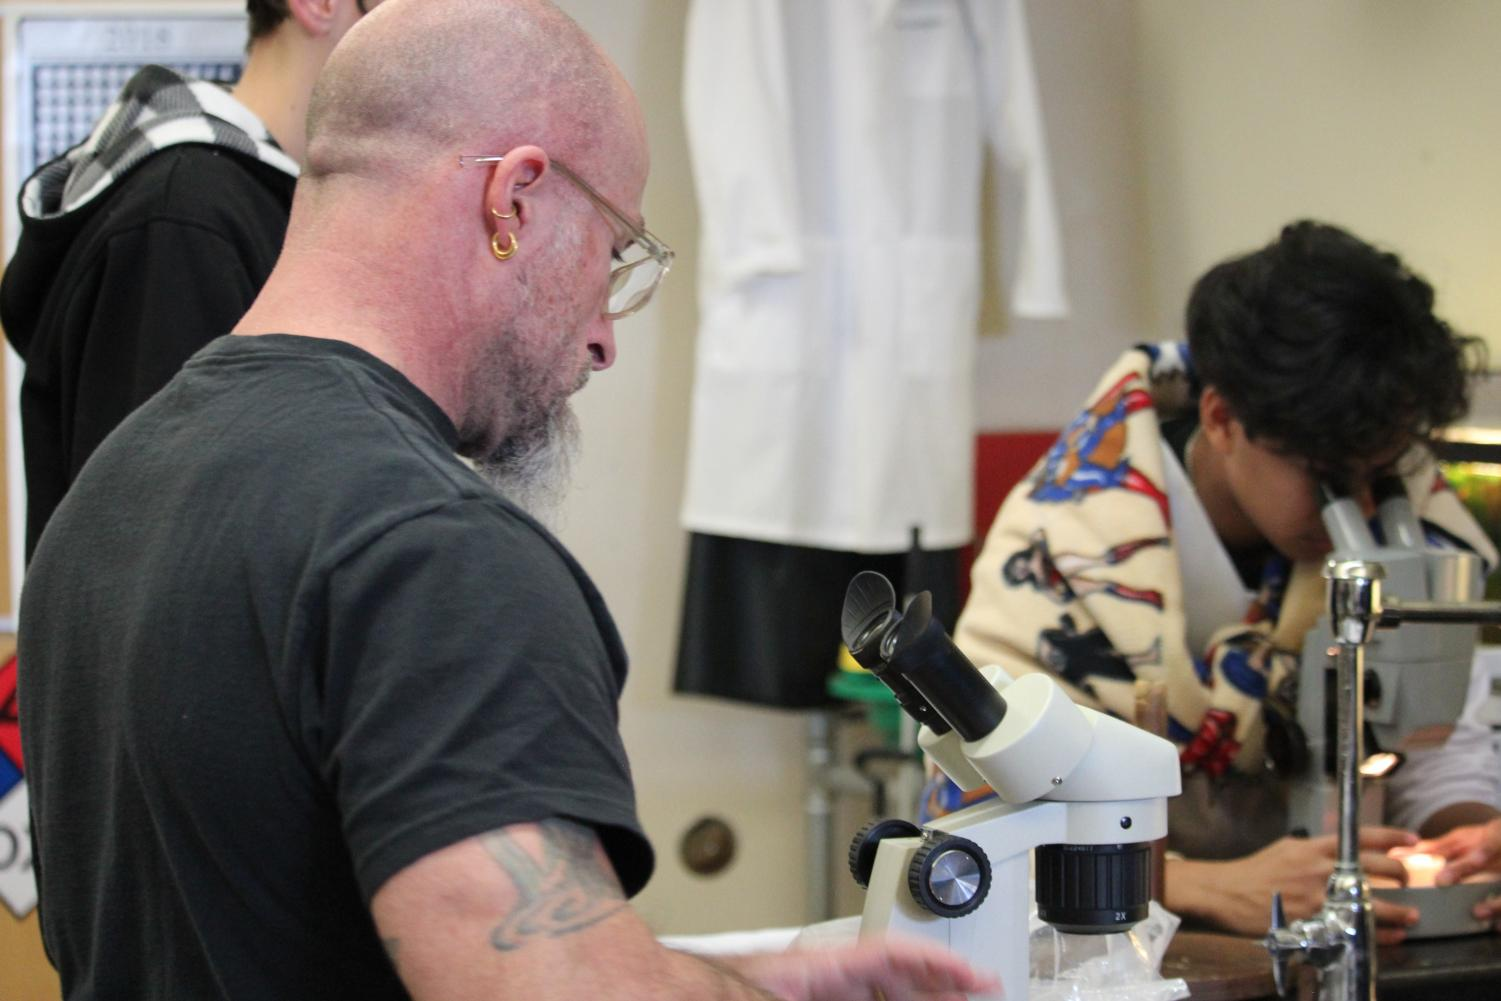 Effective next school year, the NGSS pathway will shift the science outline to follow a Biology, Physics, then Chemistry path. Science teacher CJ Addington is currently the only teacher at RHS with the credentials to teach Physics.